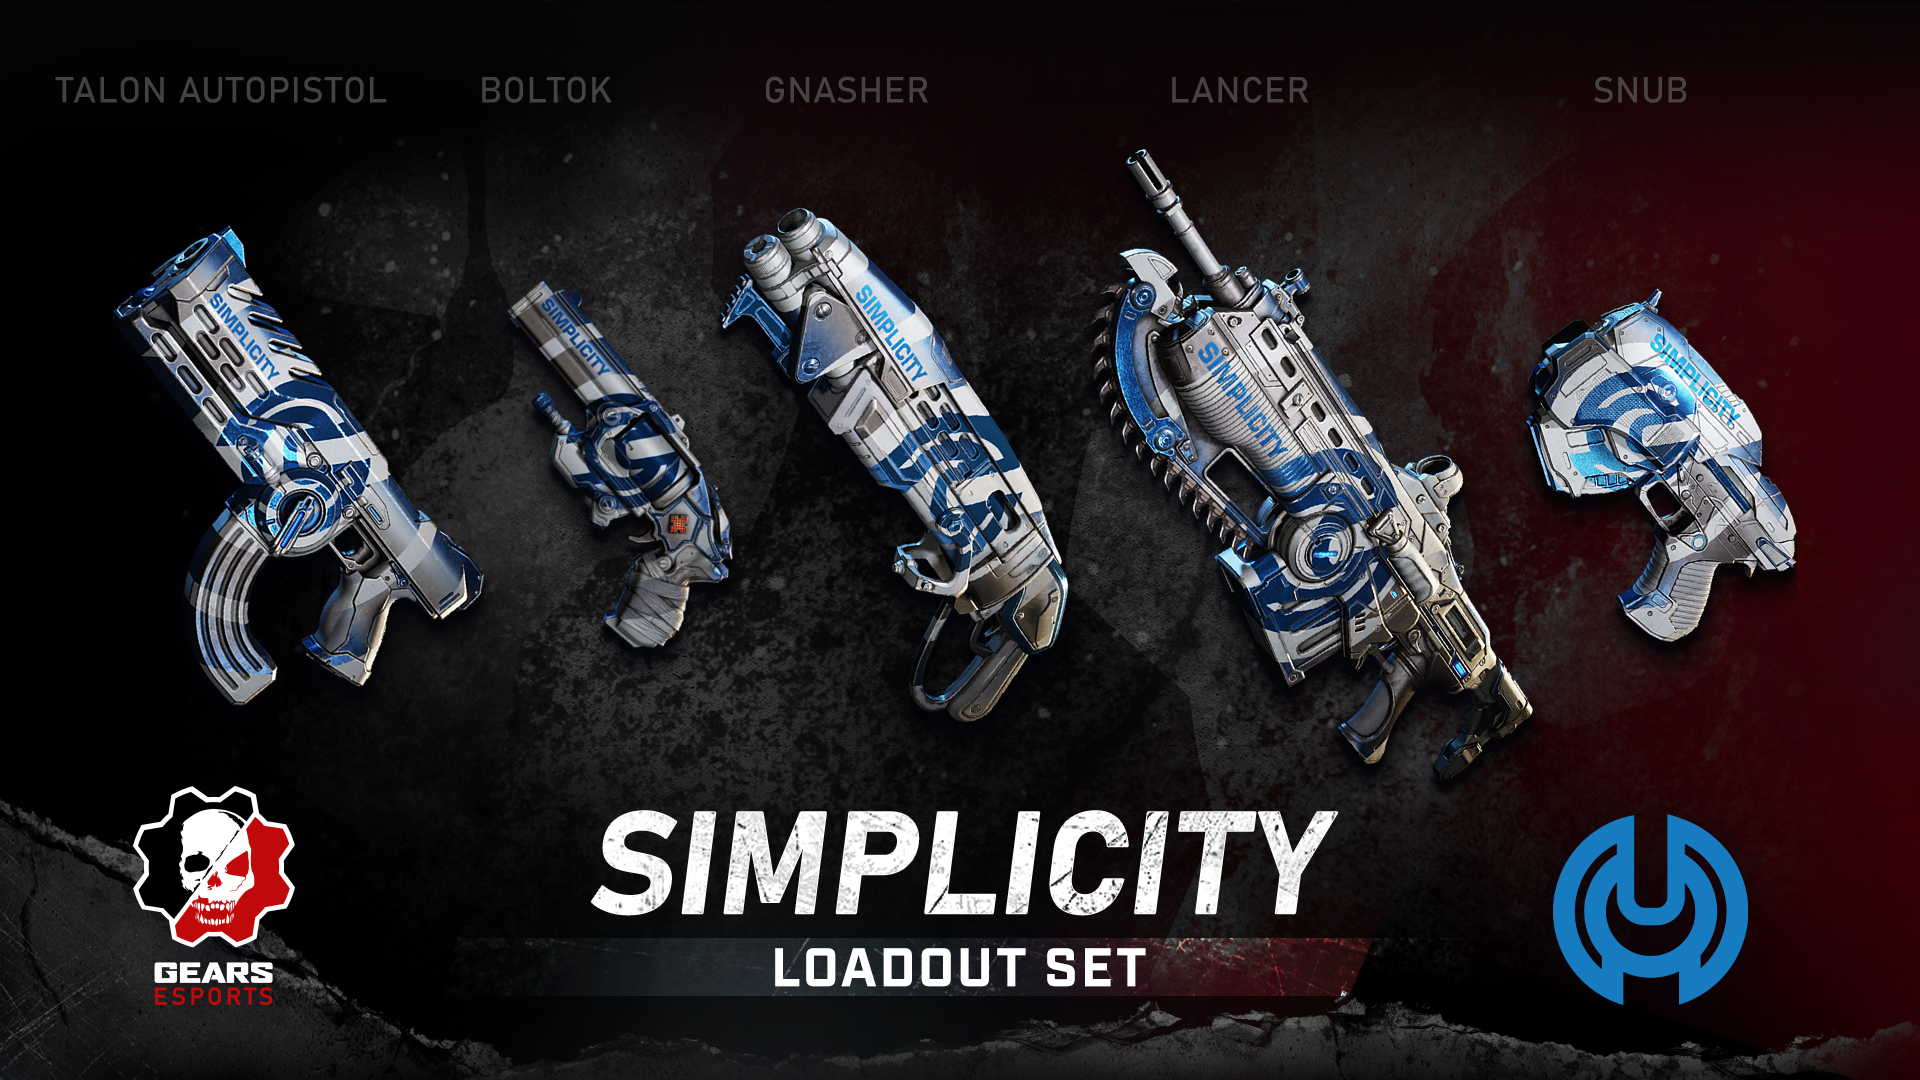 Simplicity Gears of War Team Skins